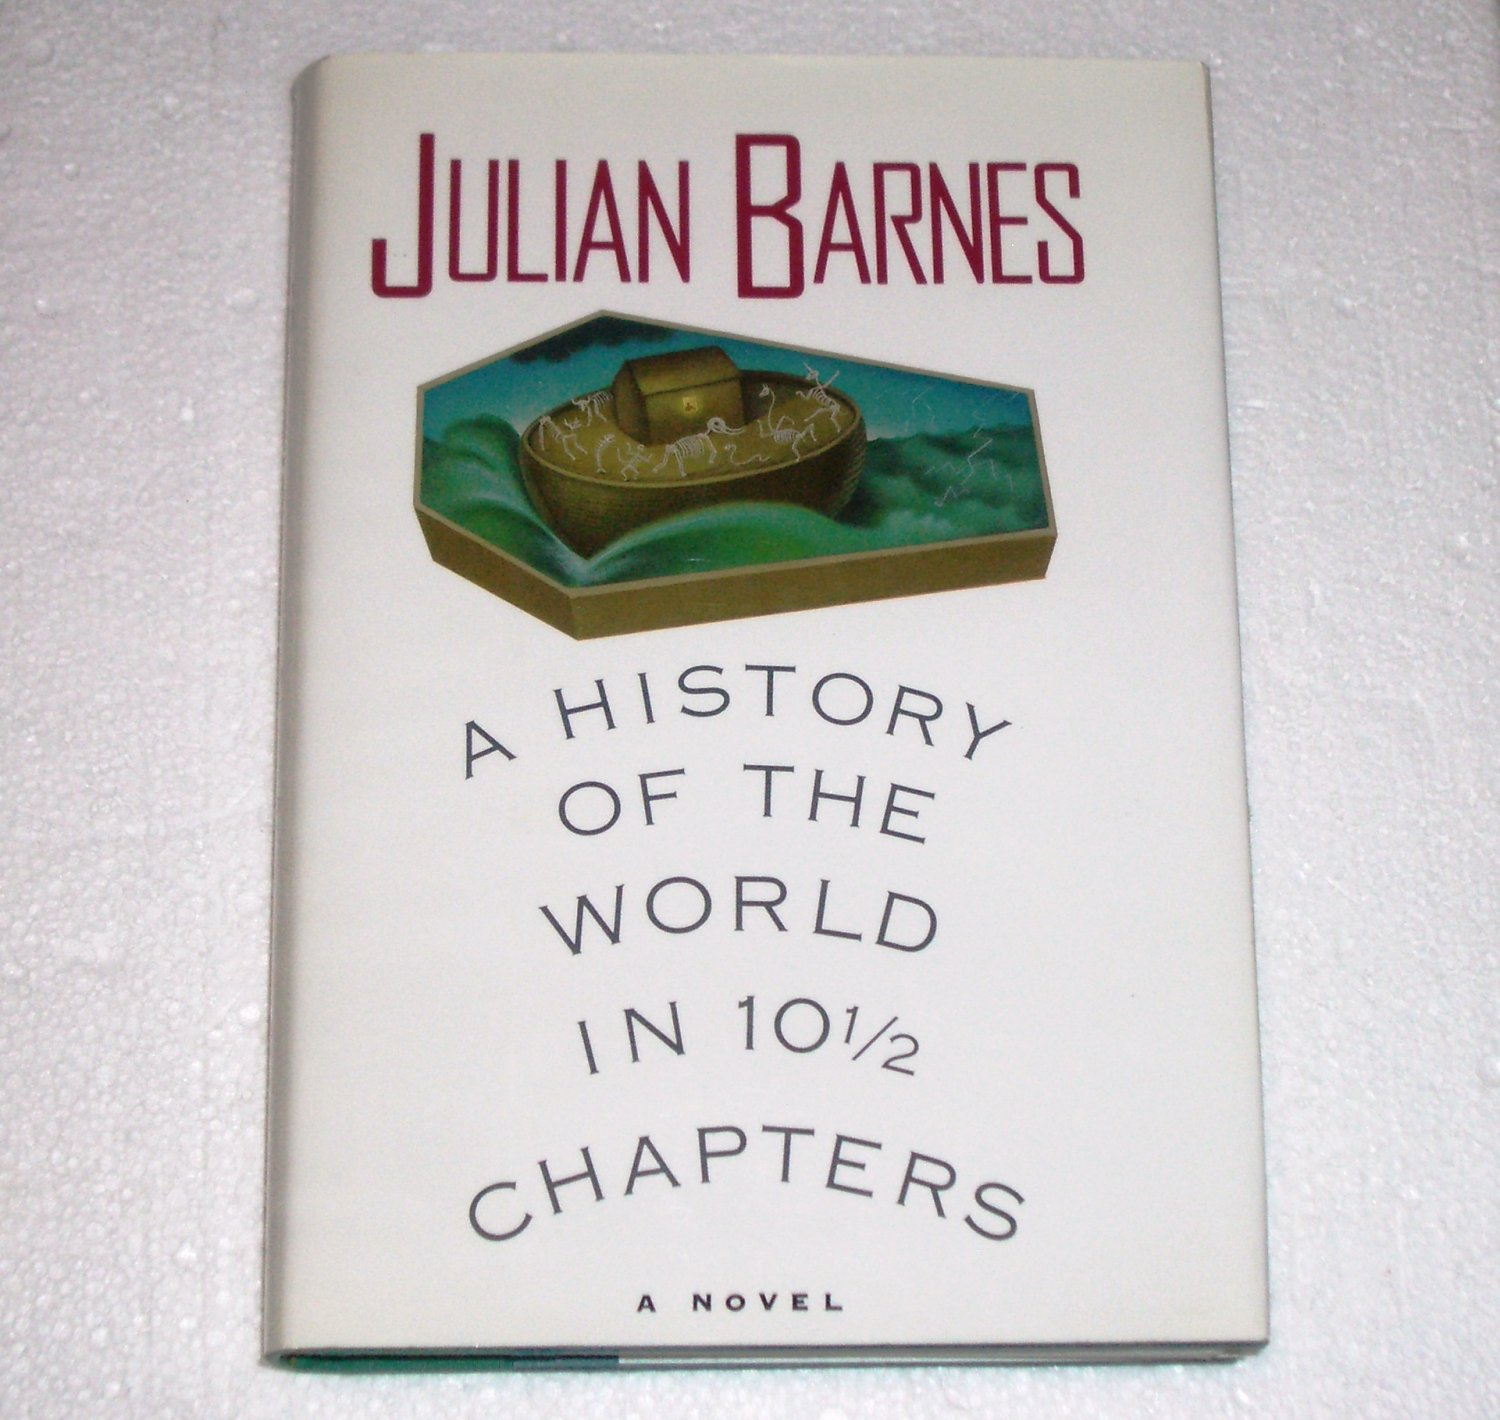 A History of the World in 10 1/2 Chapters by Julian Barnes Hardcover 1989 1st American edition